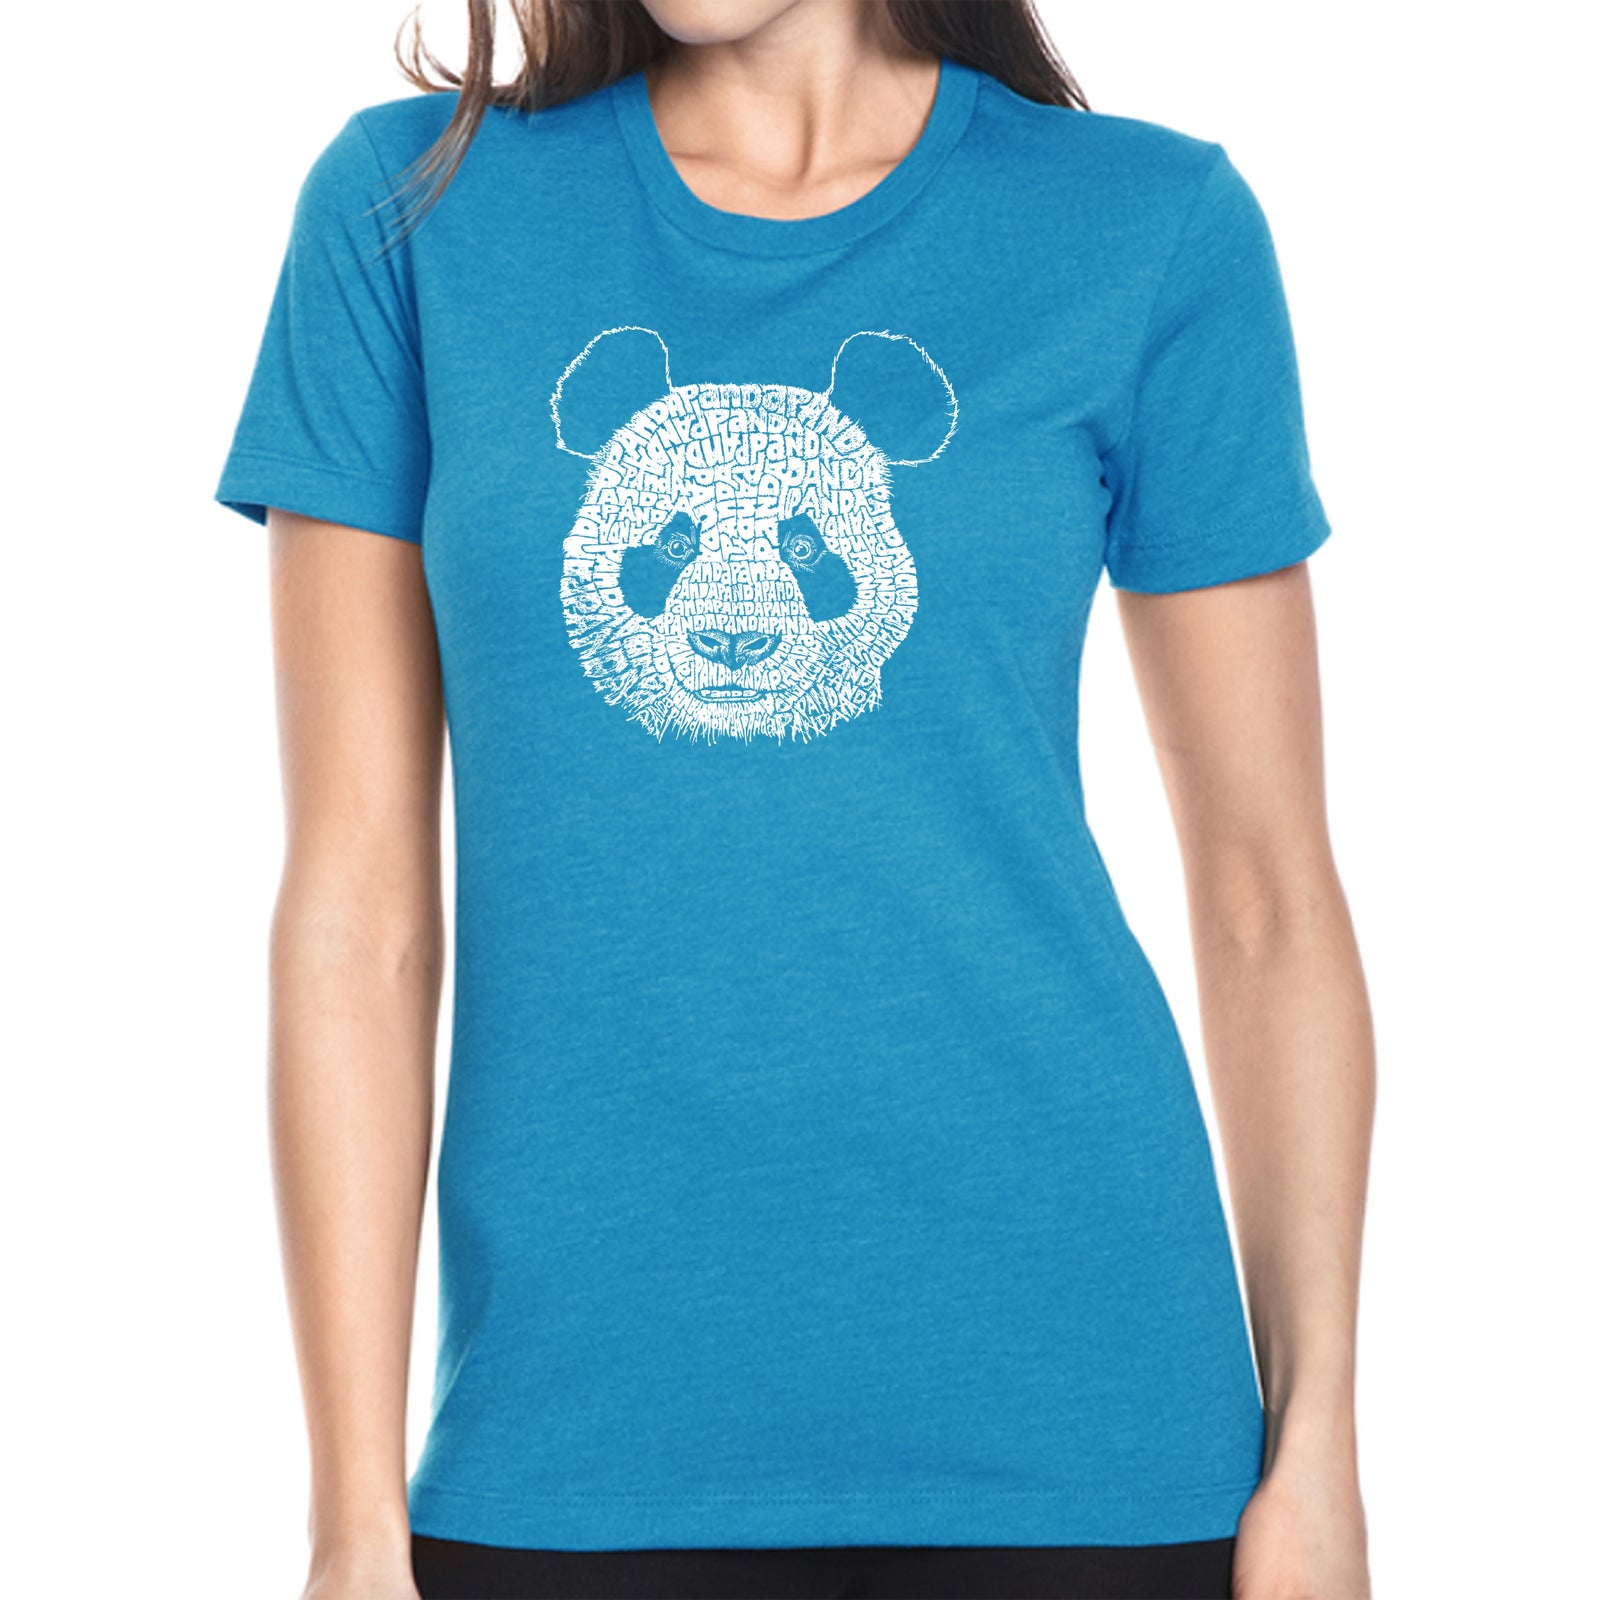 Women's Premium Blend Word Art T-shirt - Panda